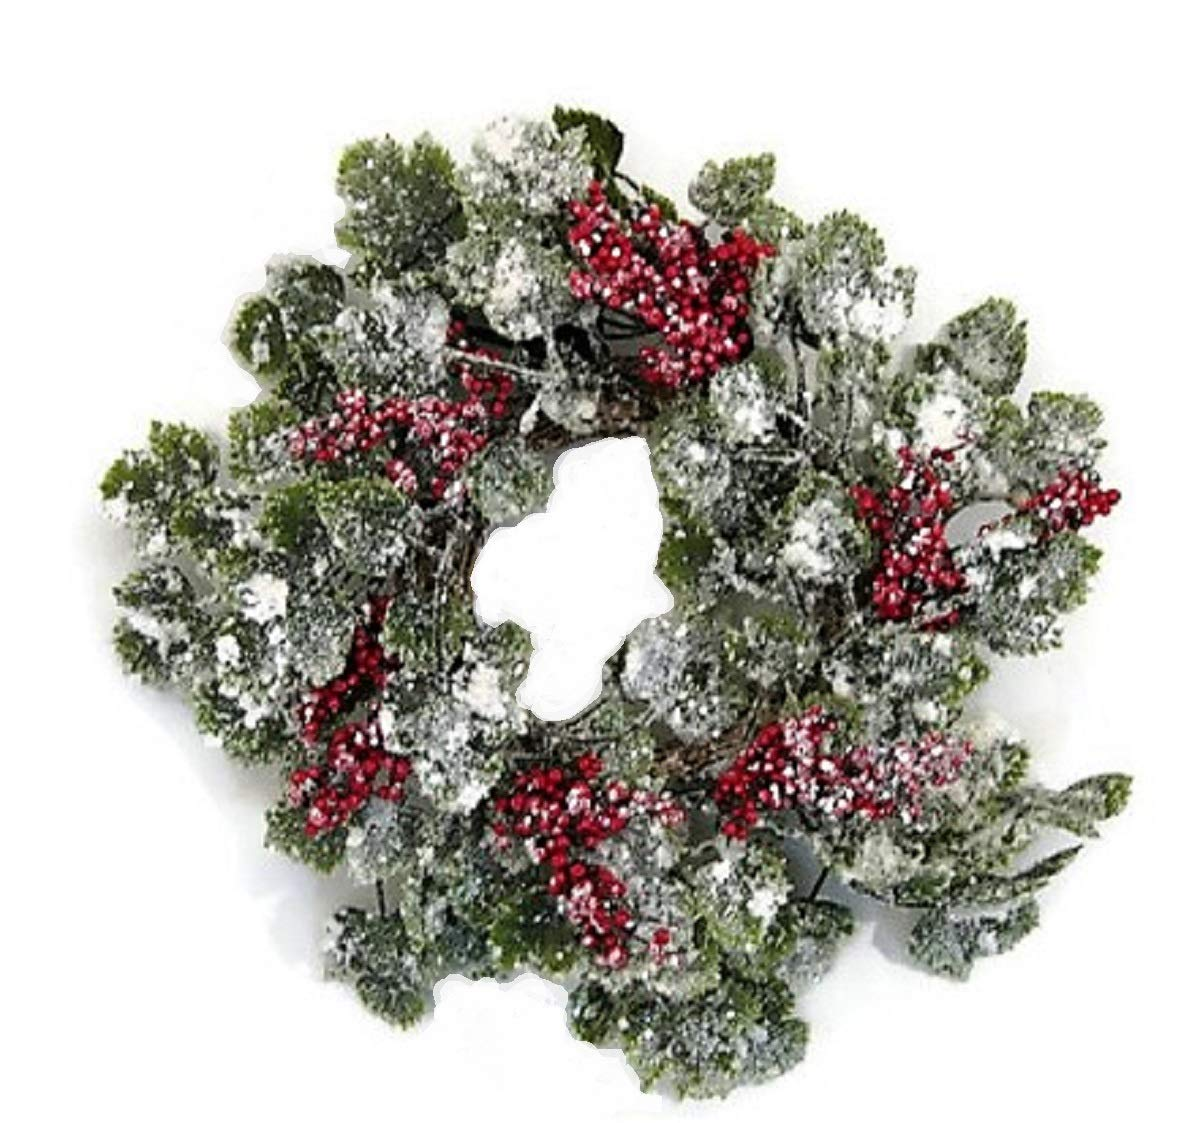 JMB Christmas Snow Covered Ivy Vine Wreaths 72 Garland Garland Candle Ring or Hurricane Centerpiece Buyers Choice of Item and Size Candle Ring or Hurricane Centerpiece Buyer/'s Choice of Item and Size 72 Garland Chinese Unknown 14543093